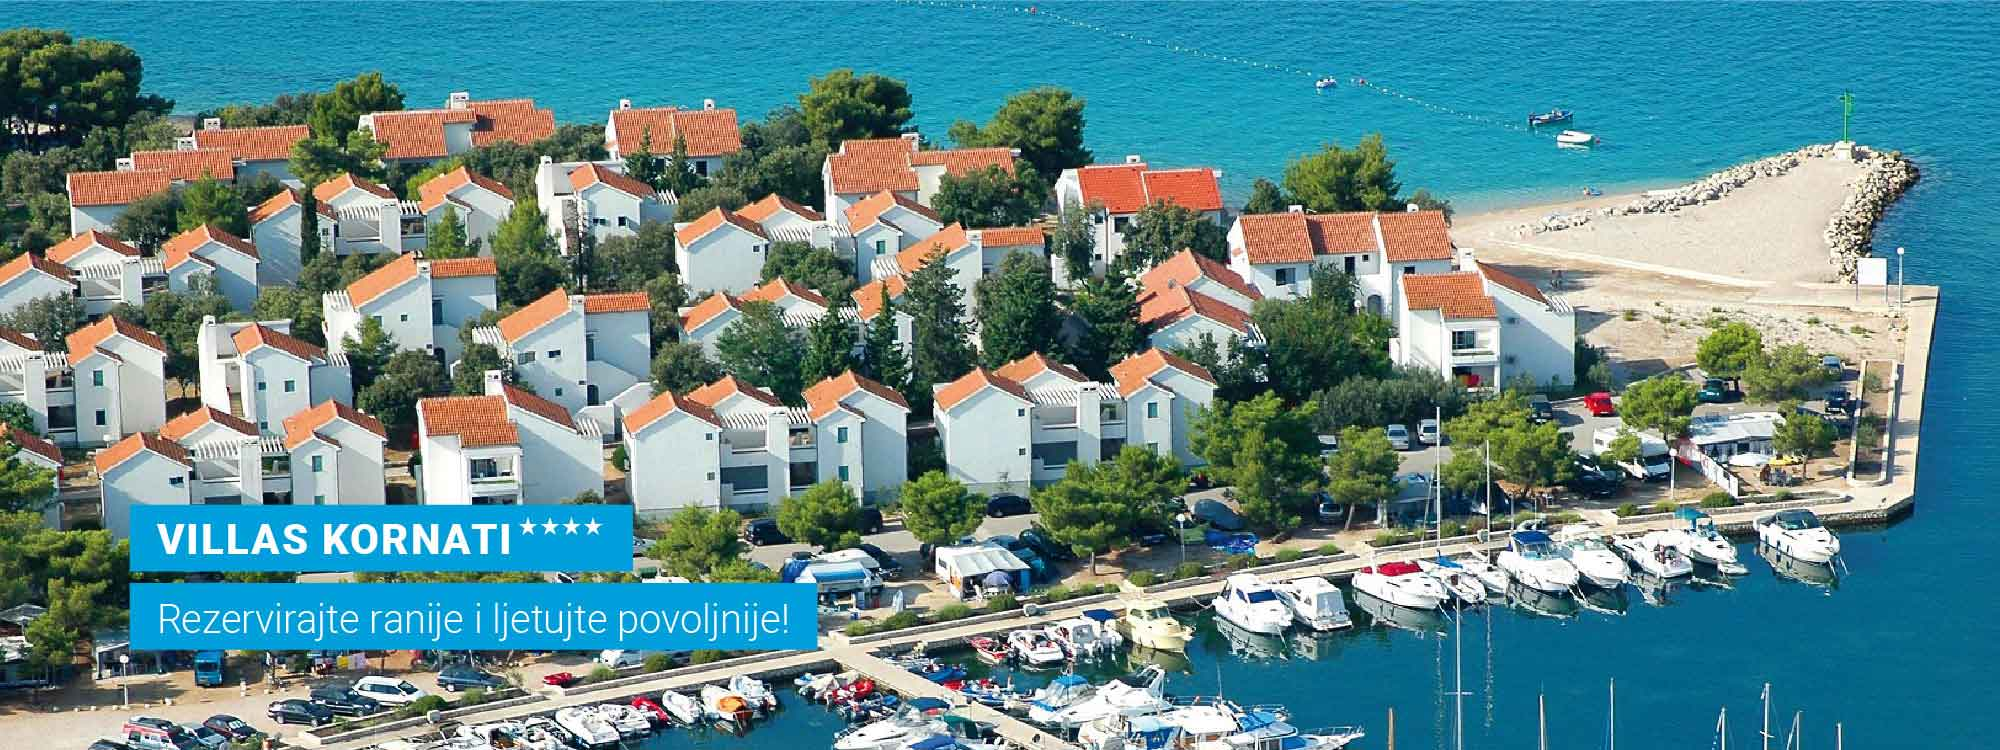 Web-slider-Rani-booking-Villas-Kornati-01